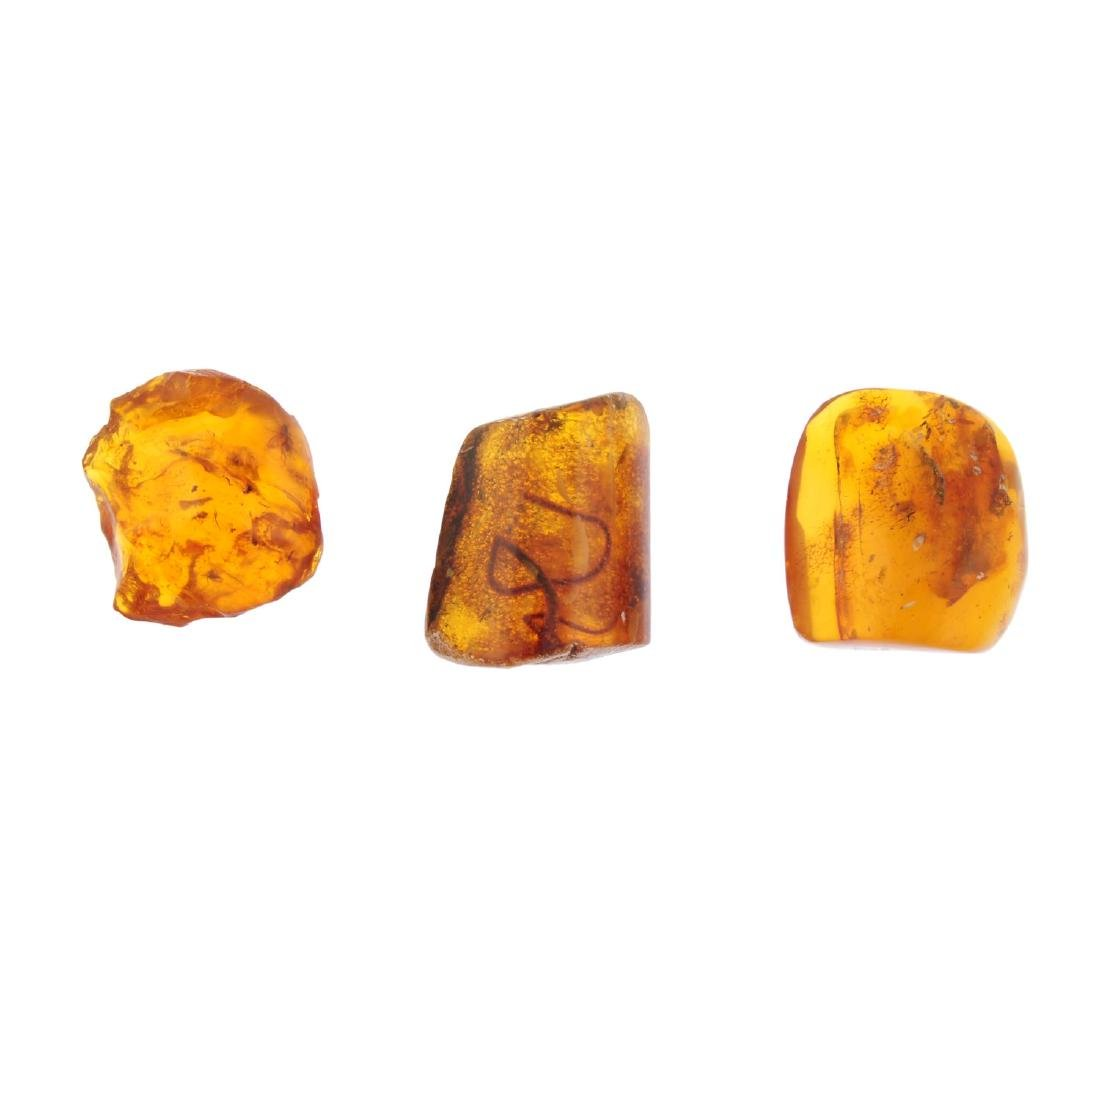 Three natural Baltic amber pieces with insect and fauna